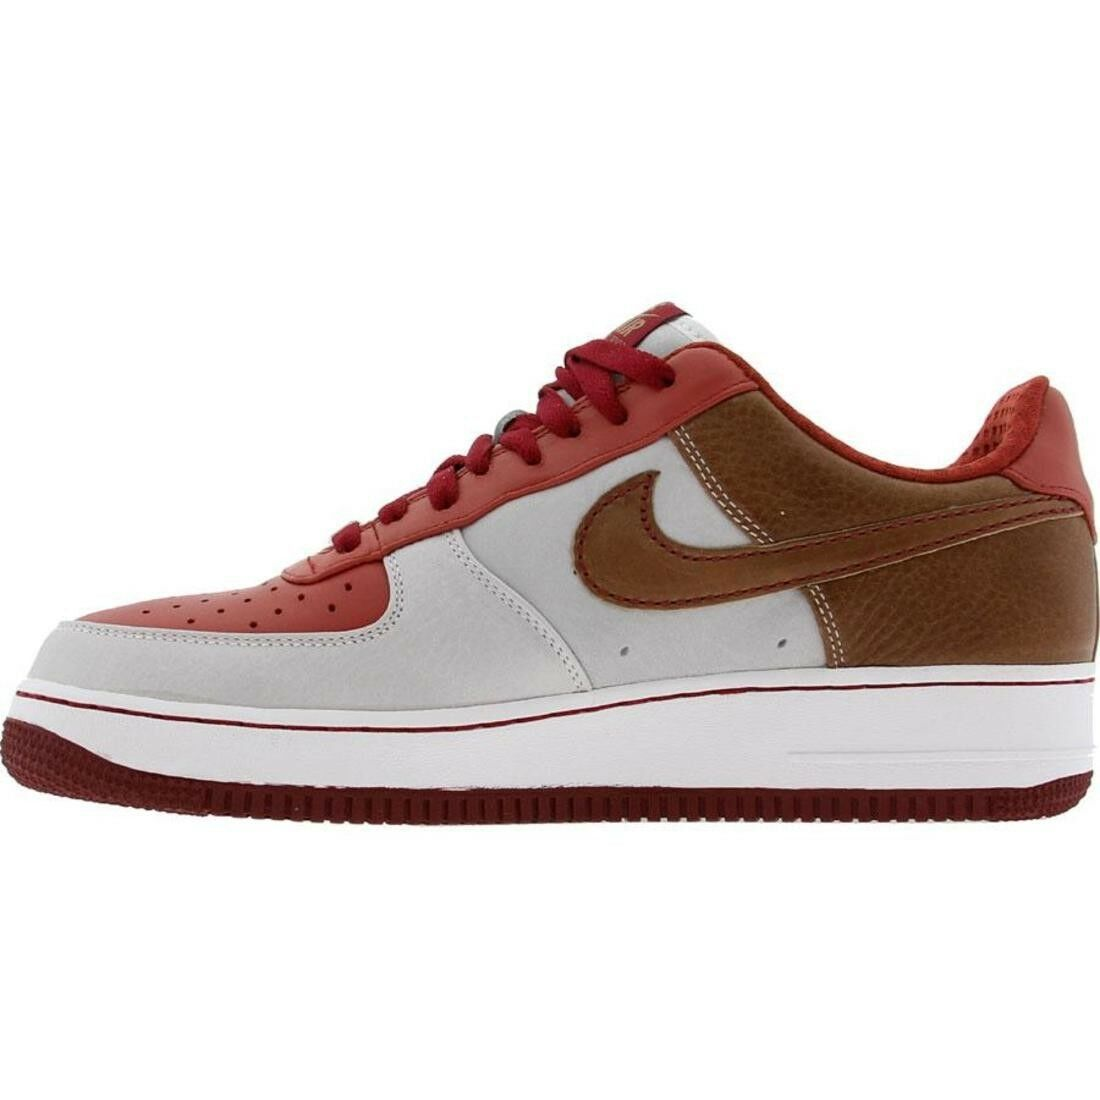 315180-121 Nike Air Force 1 07 Low Premium Mr Baltimore Pine Nut Red White Scarpe classiche da uomo